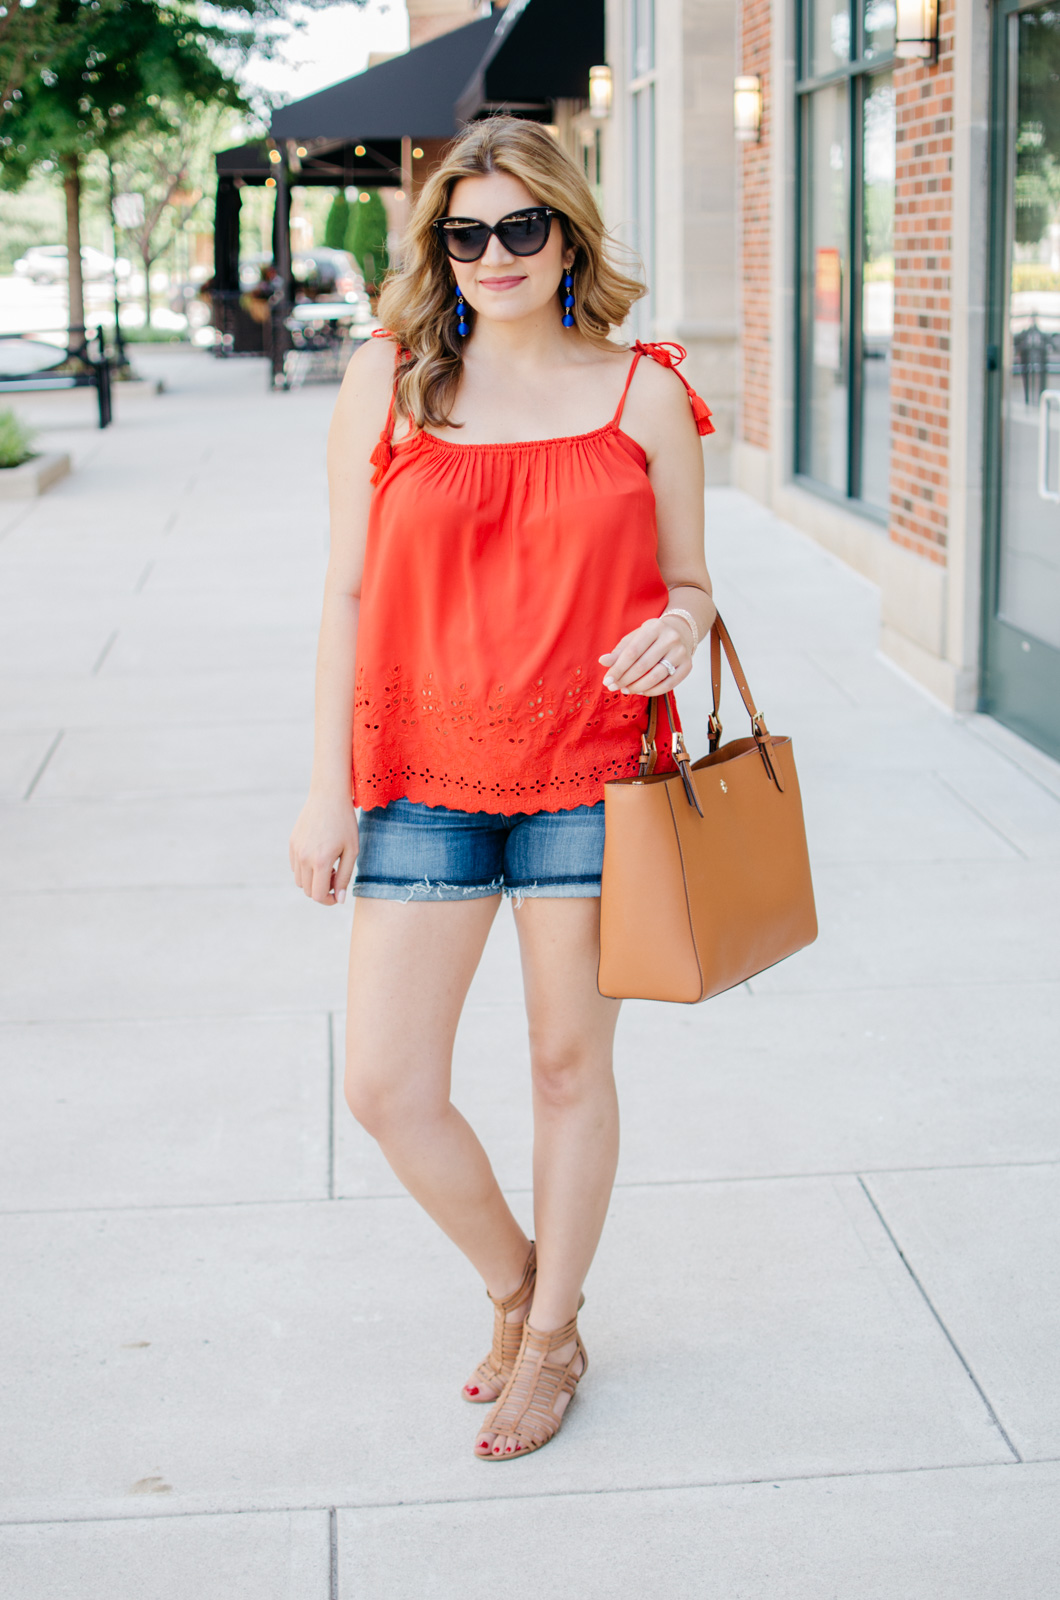 summer pregnancy outfit - tassel tank | For more cute maternity outfits, head to bylaurenm.com!